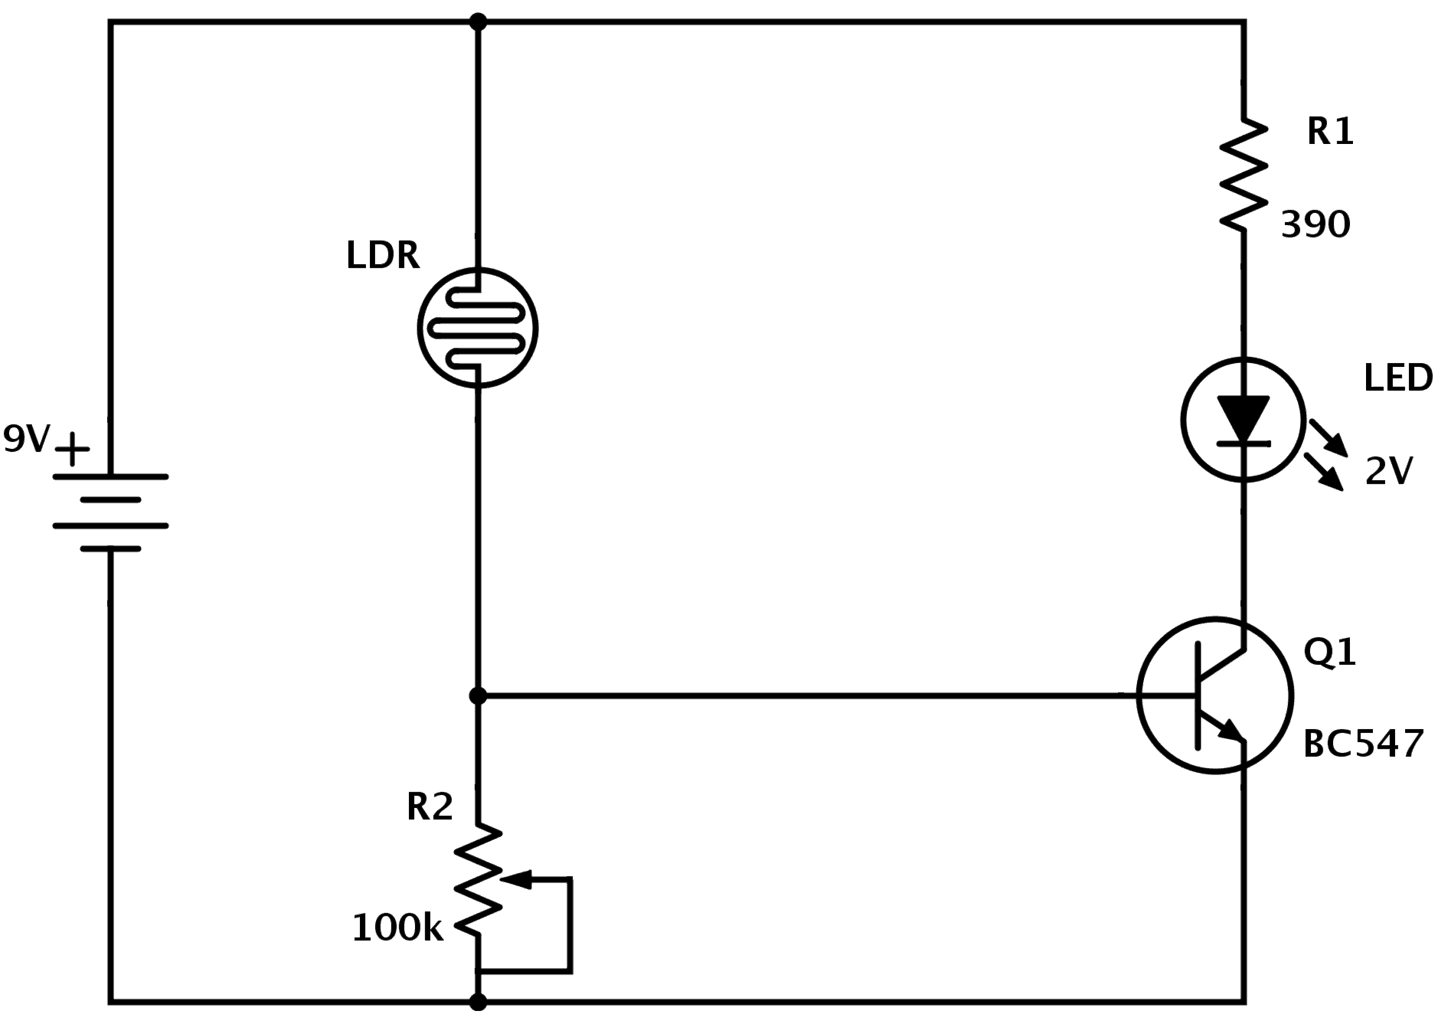 LDR circuit improved circuit diagram how to read and understand any schematic how to read wiring diagrams at love-stories.co